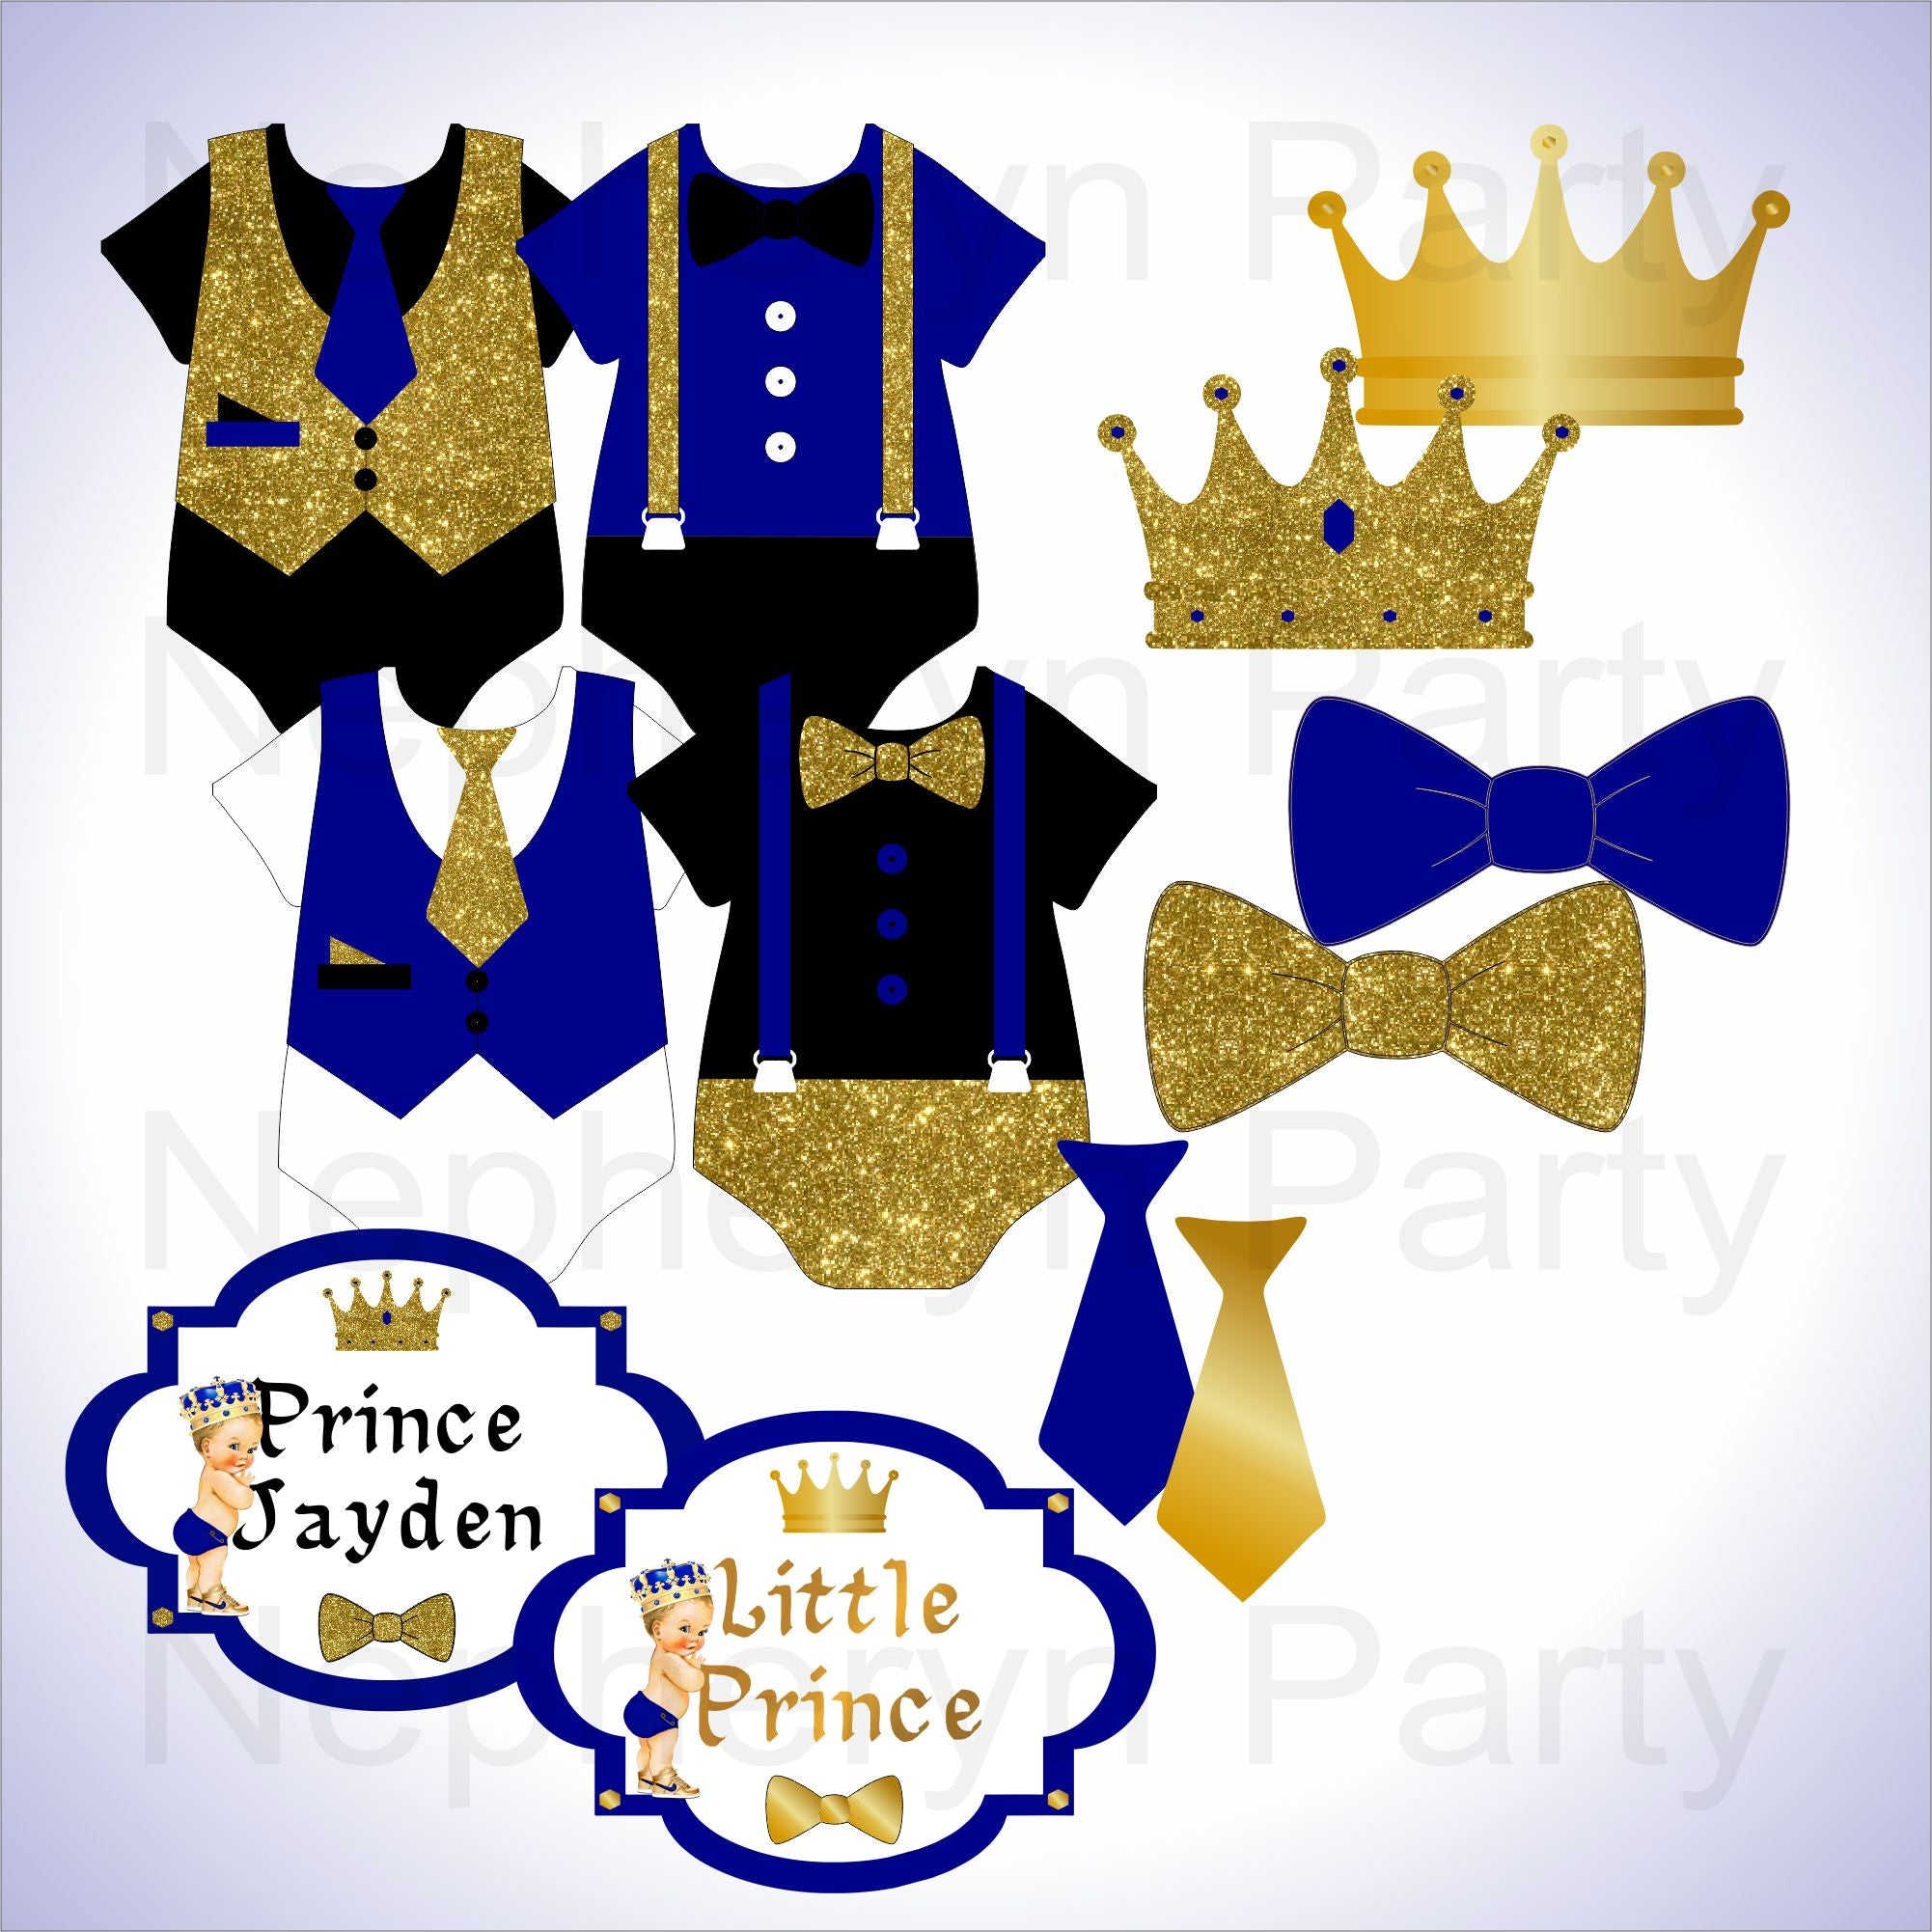 Clipart Instant Download Royal Blue Little Prince Ornate Gold Crown Gold Sneakers Rattle Baby Boy 3 Skin Tones